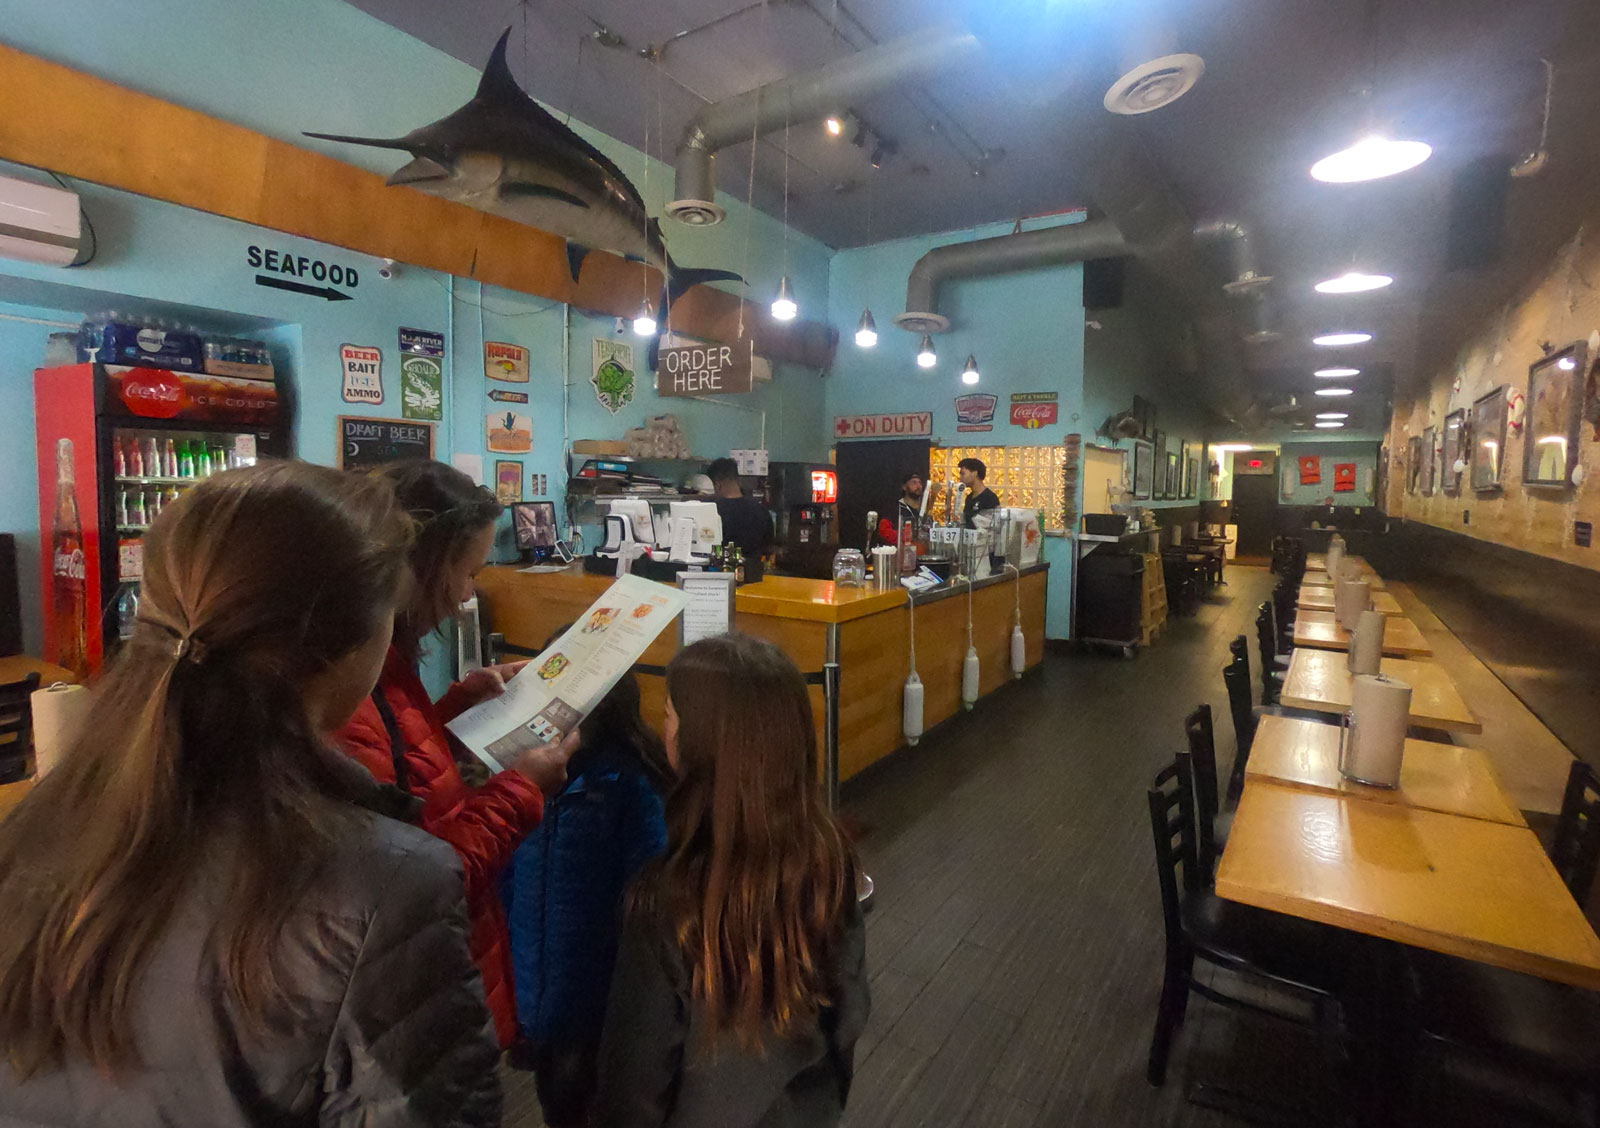 Family looking at Savannah Seafood Shack menu